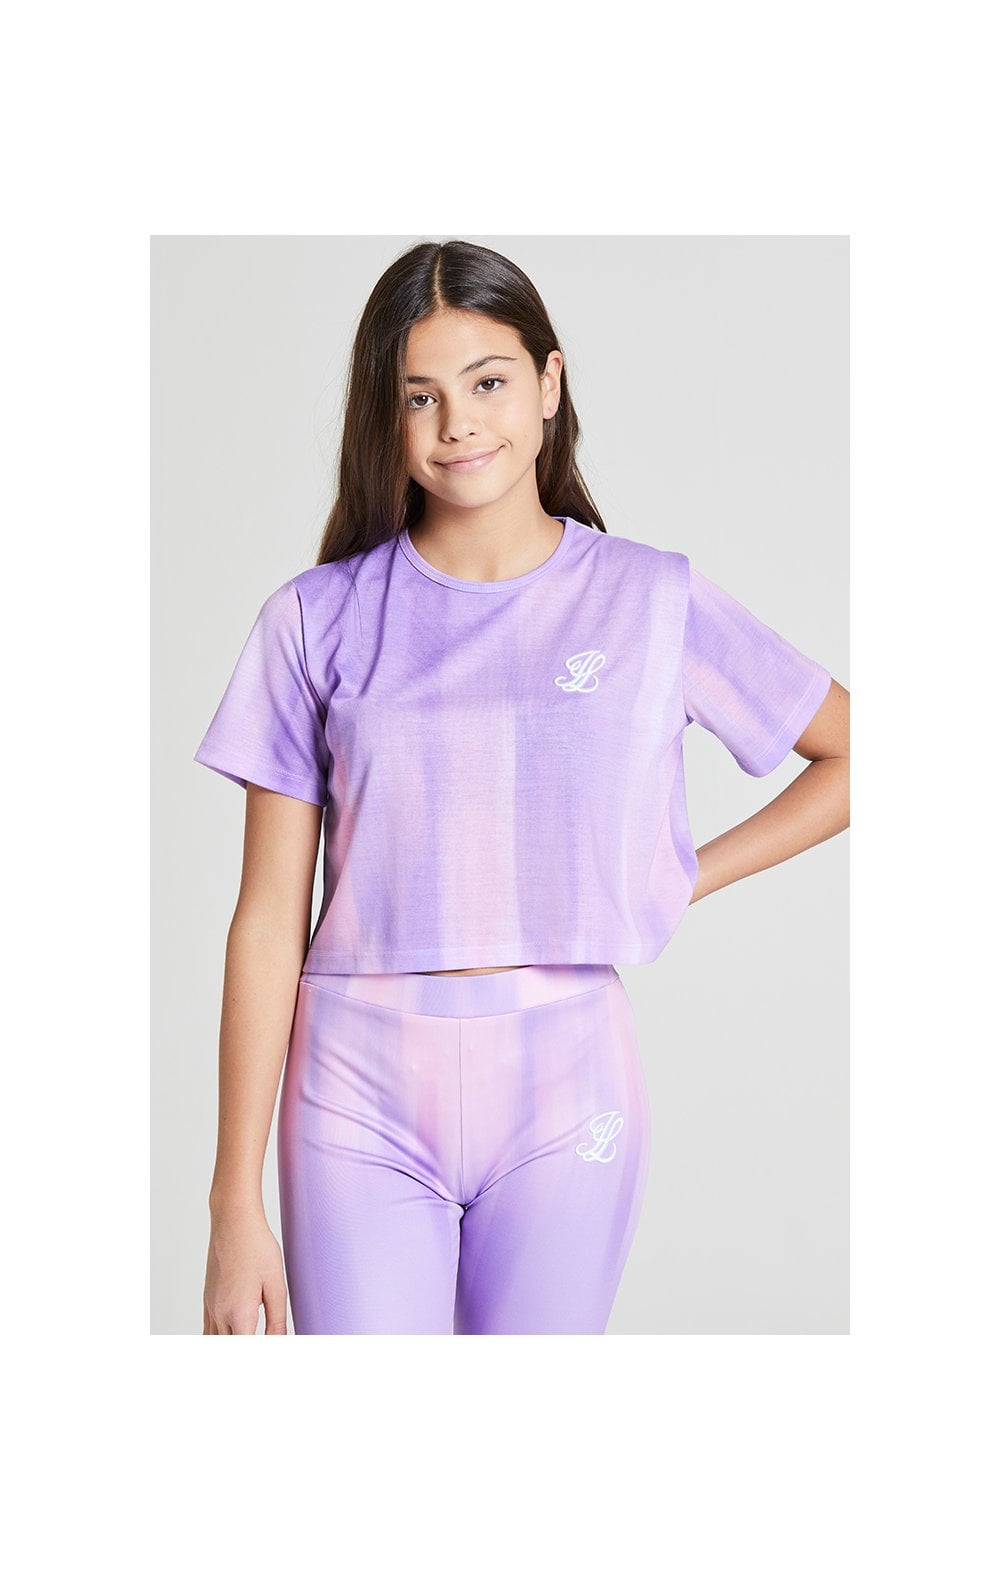 Illusive London Cropped Marble Tee - Lilac & Marble (1)